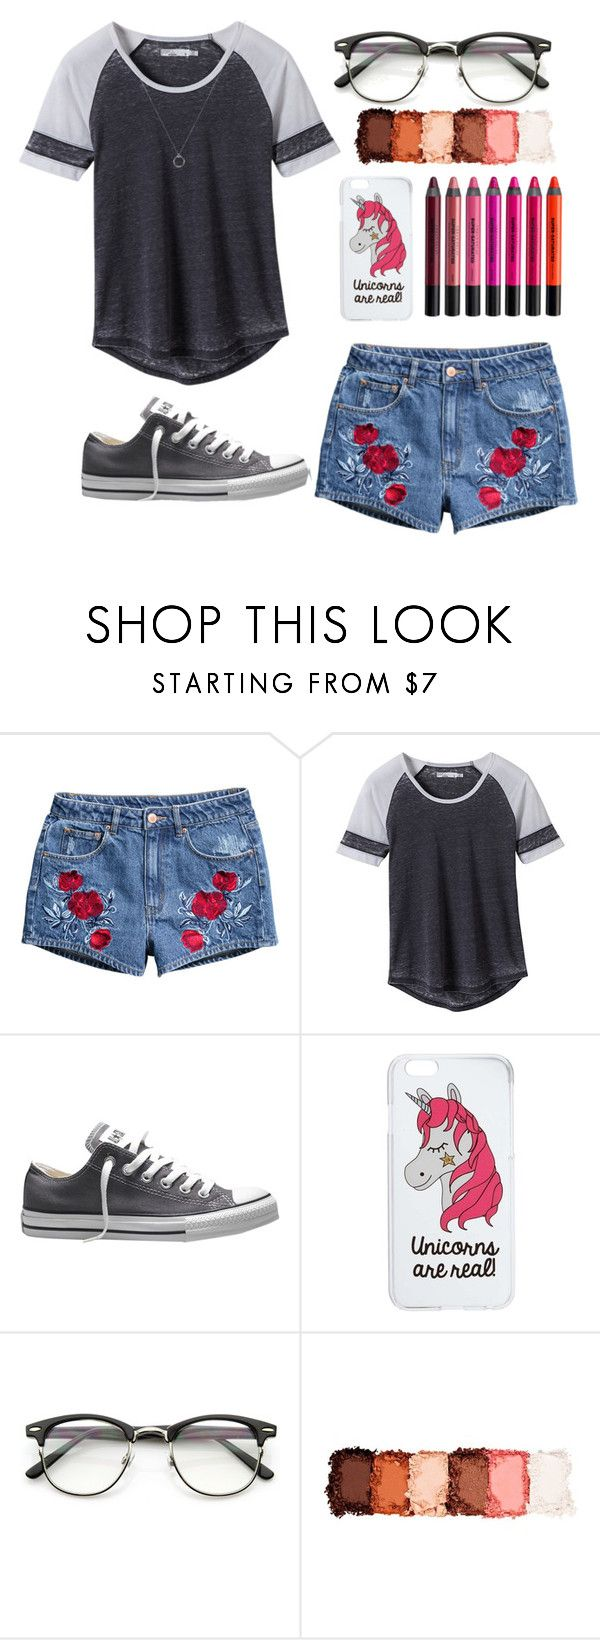 """""""Untitled #365"""" by hogwartshermione ❤ liked on Polyvore featuring H&M, prAna, Converse, Miss Selfridge, NYX and Urban Decay"""